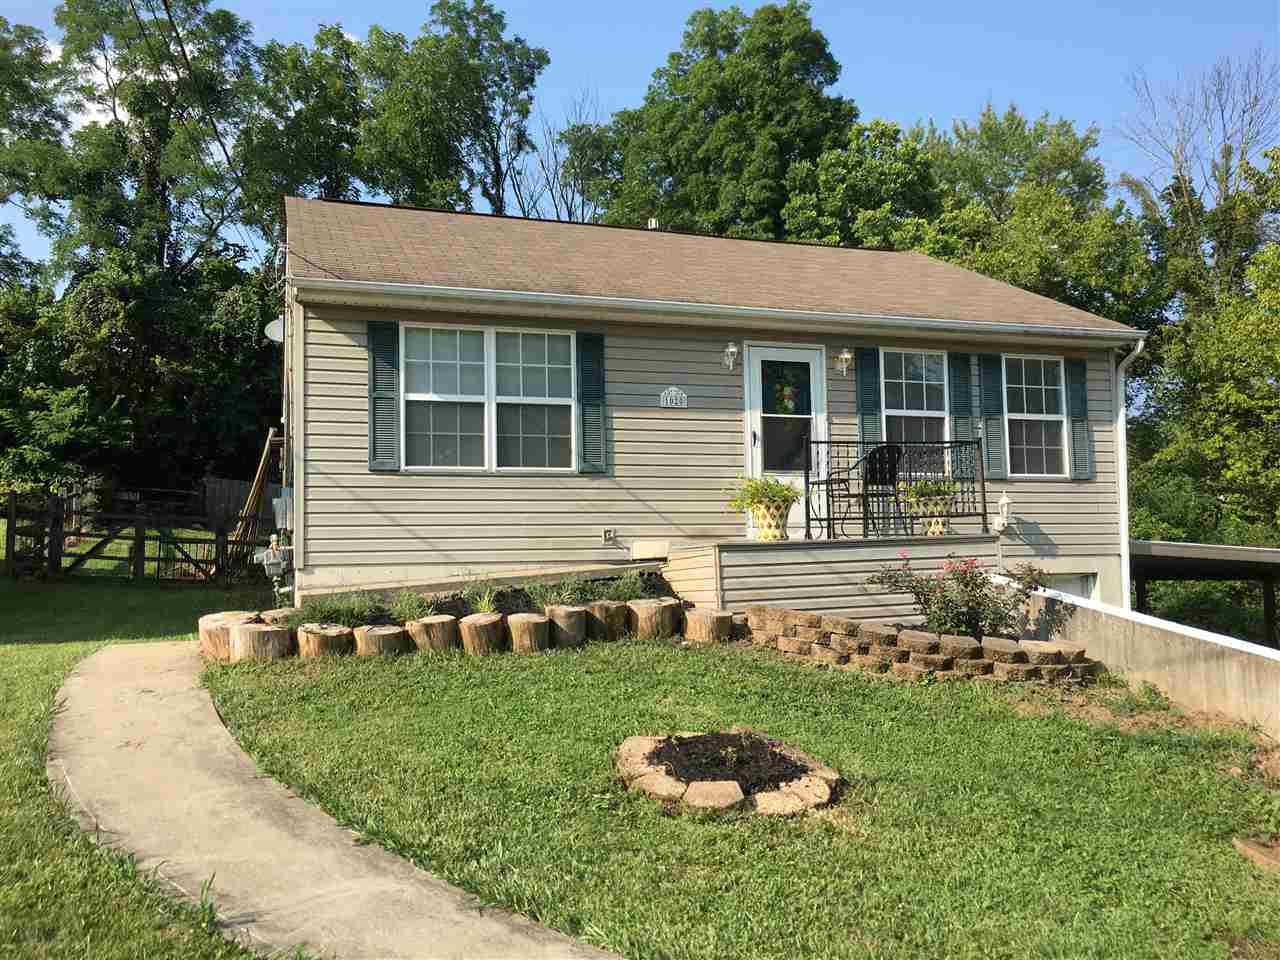 Photo 1 for 1020 Edwards Rd Elsmere, KY 41018